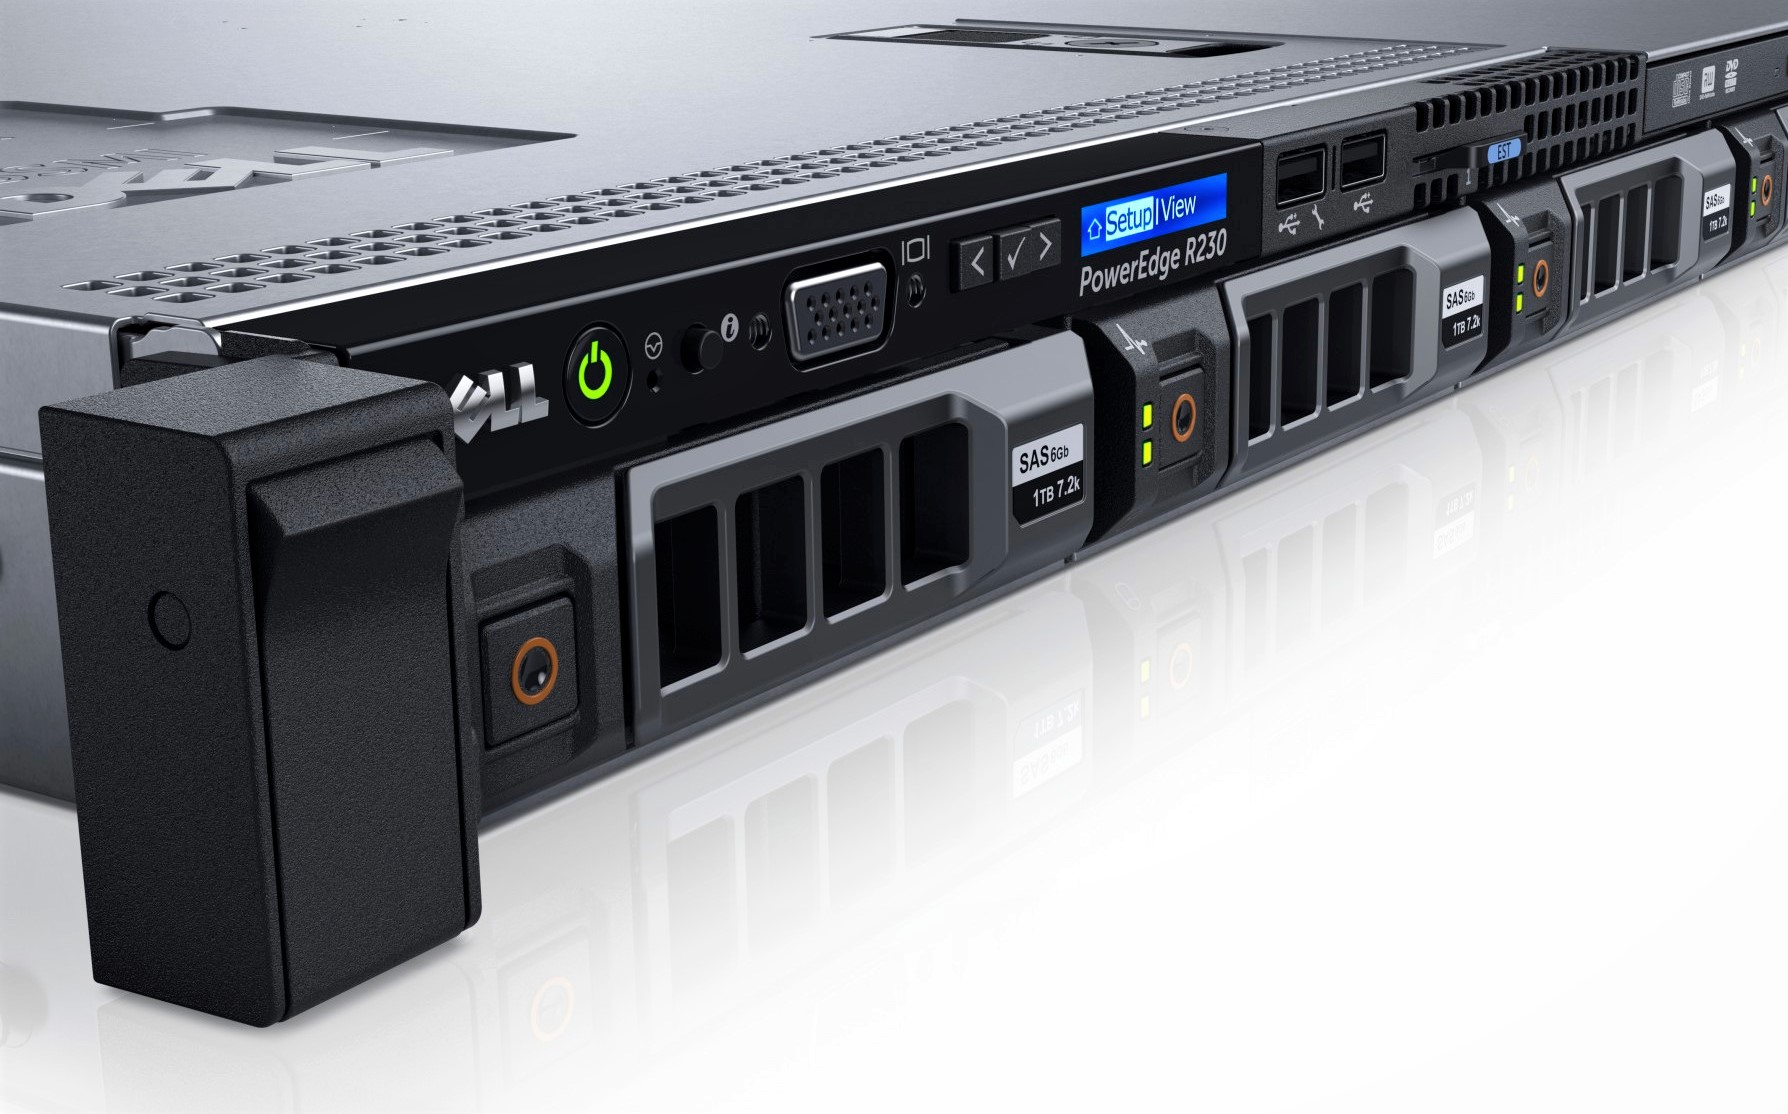 PowerEdge-R230-Rack-Server-3